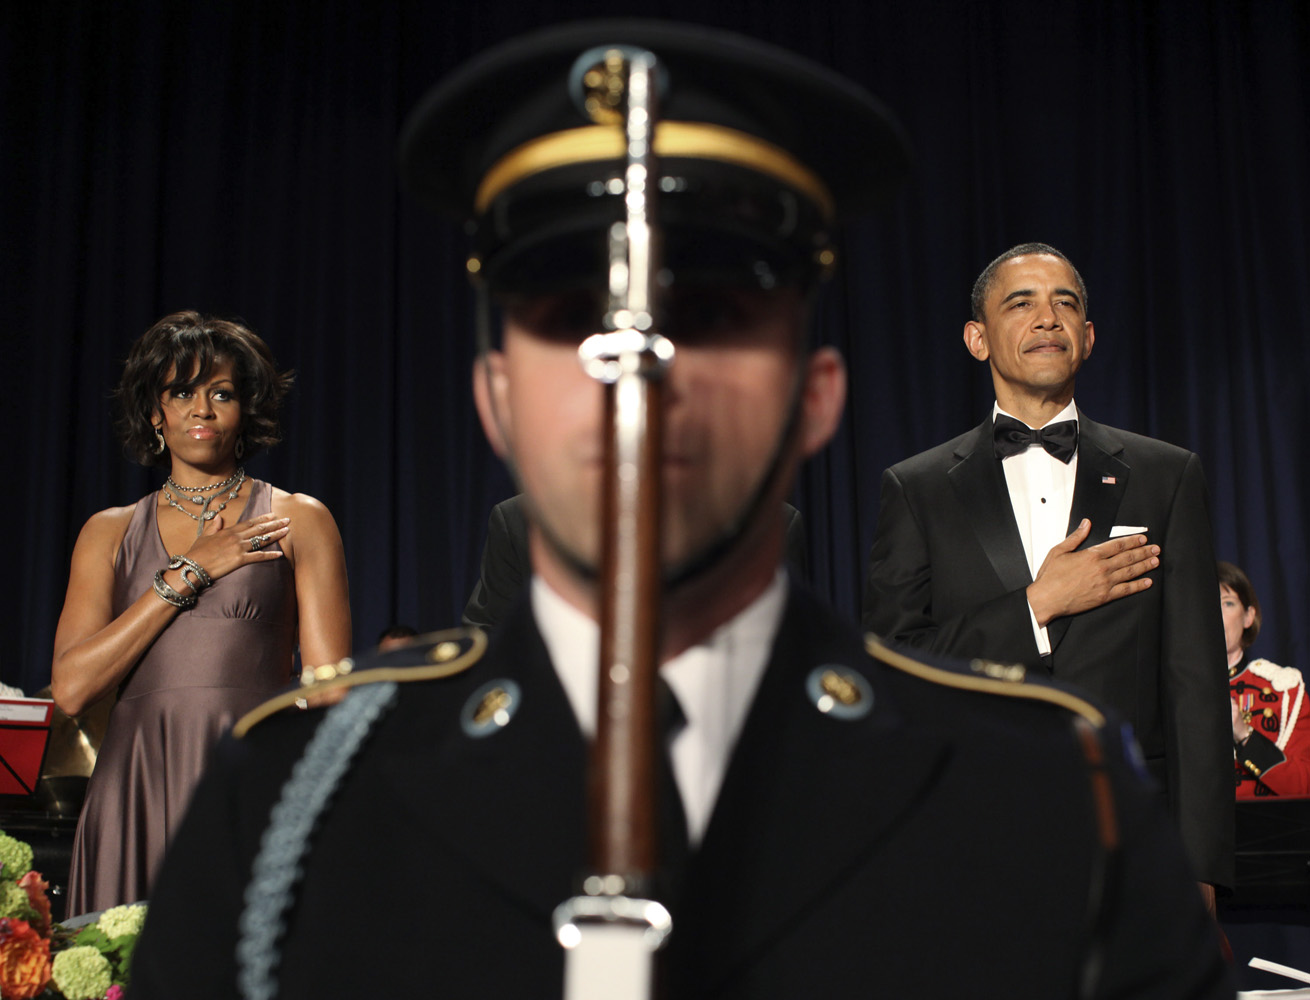 April 30, 2011. U.S. President Barack Obama and first lady Michelle Obama stand behind an honor guard soldier at the annual White House Correspondents Association Dinner at a hotel in Washington, D.C.